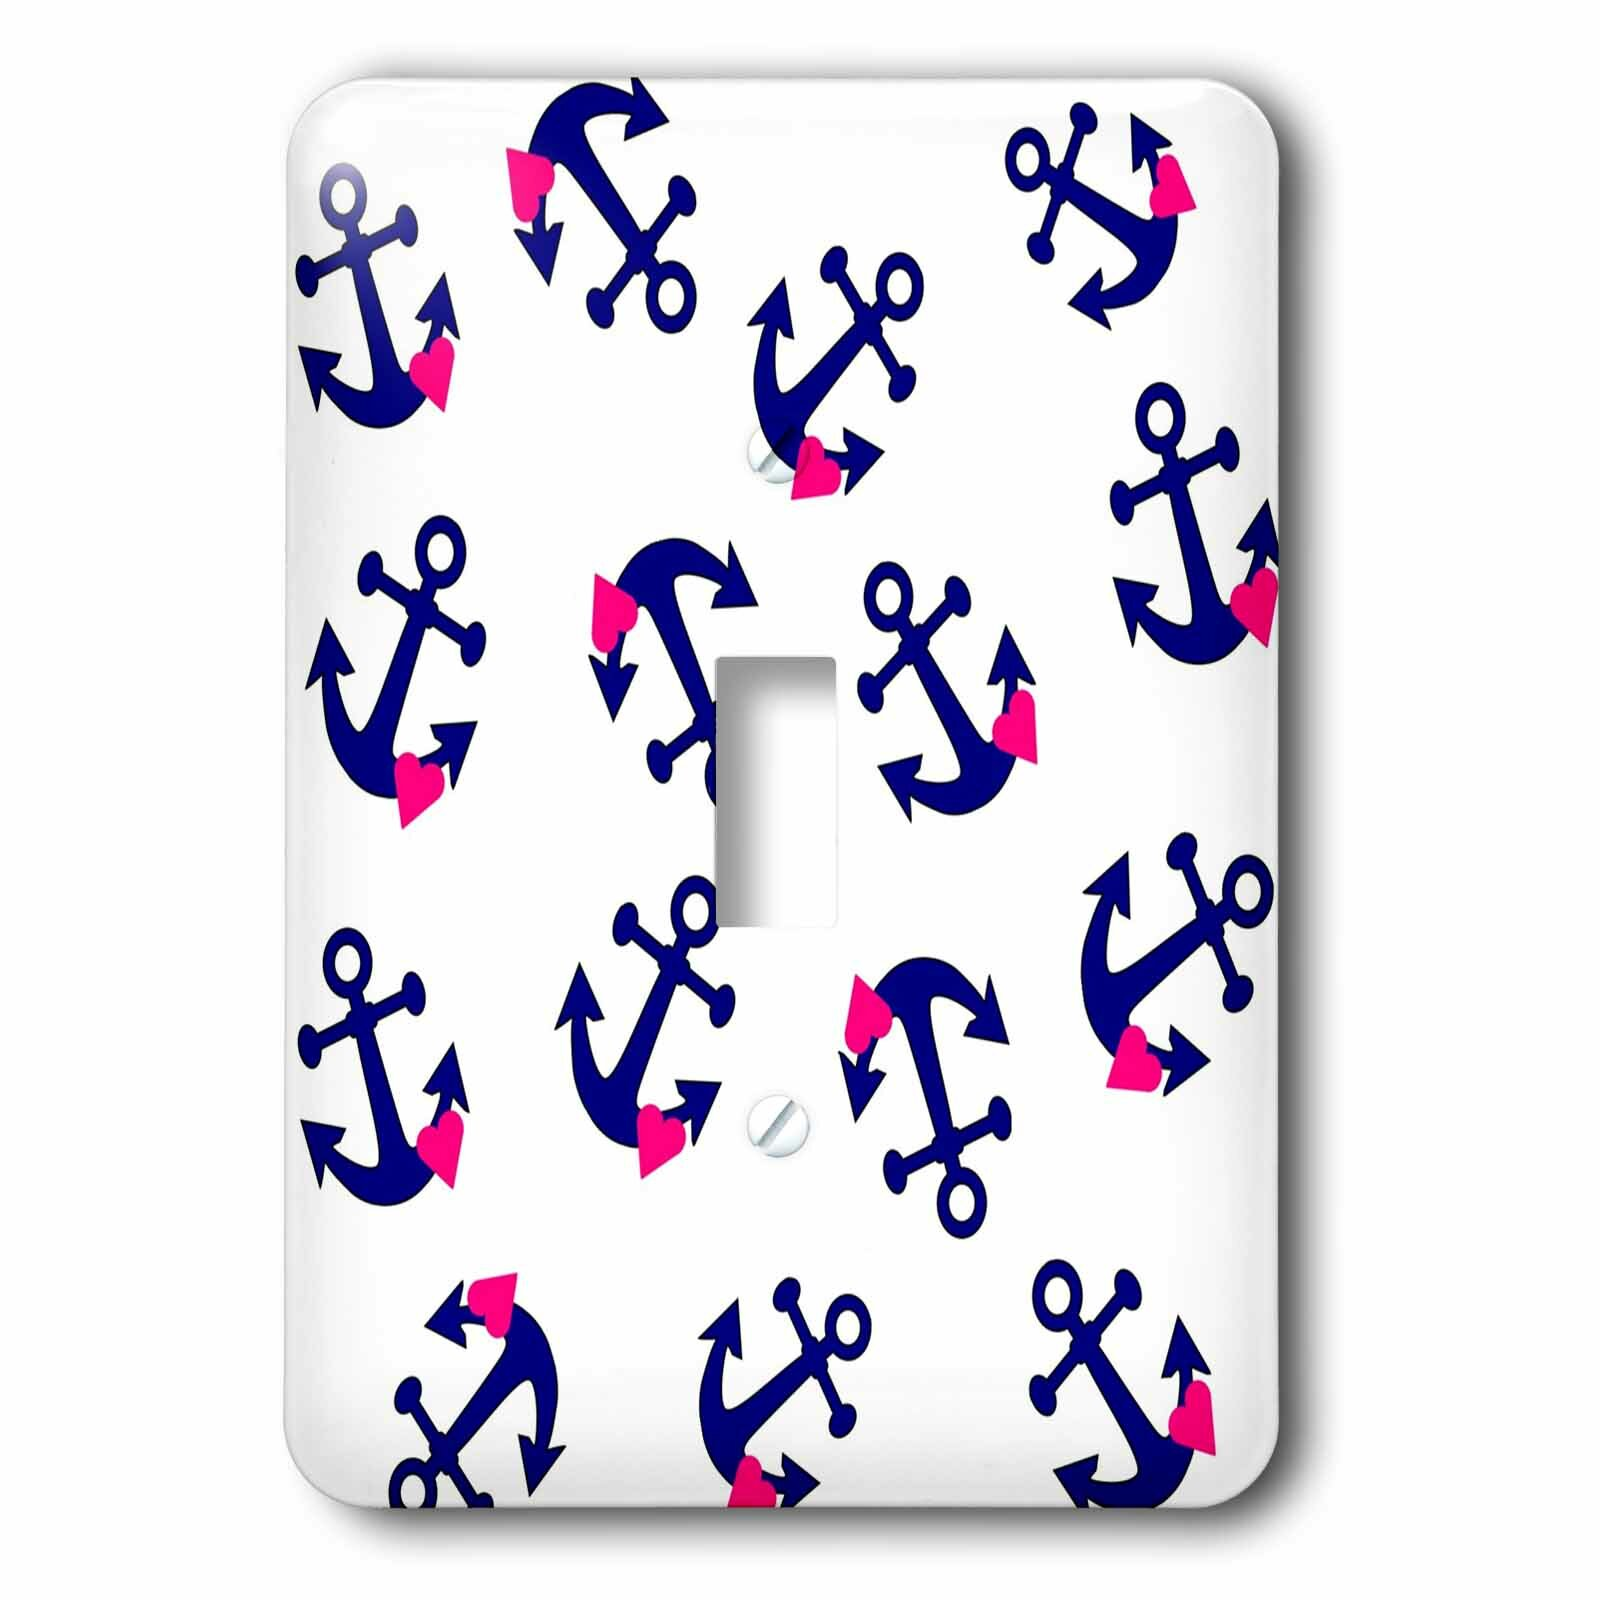 3drose Nautical Anchor With Hearts 1 Gang Toggle Light Switch Wall Plate Wayfair